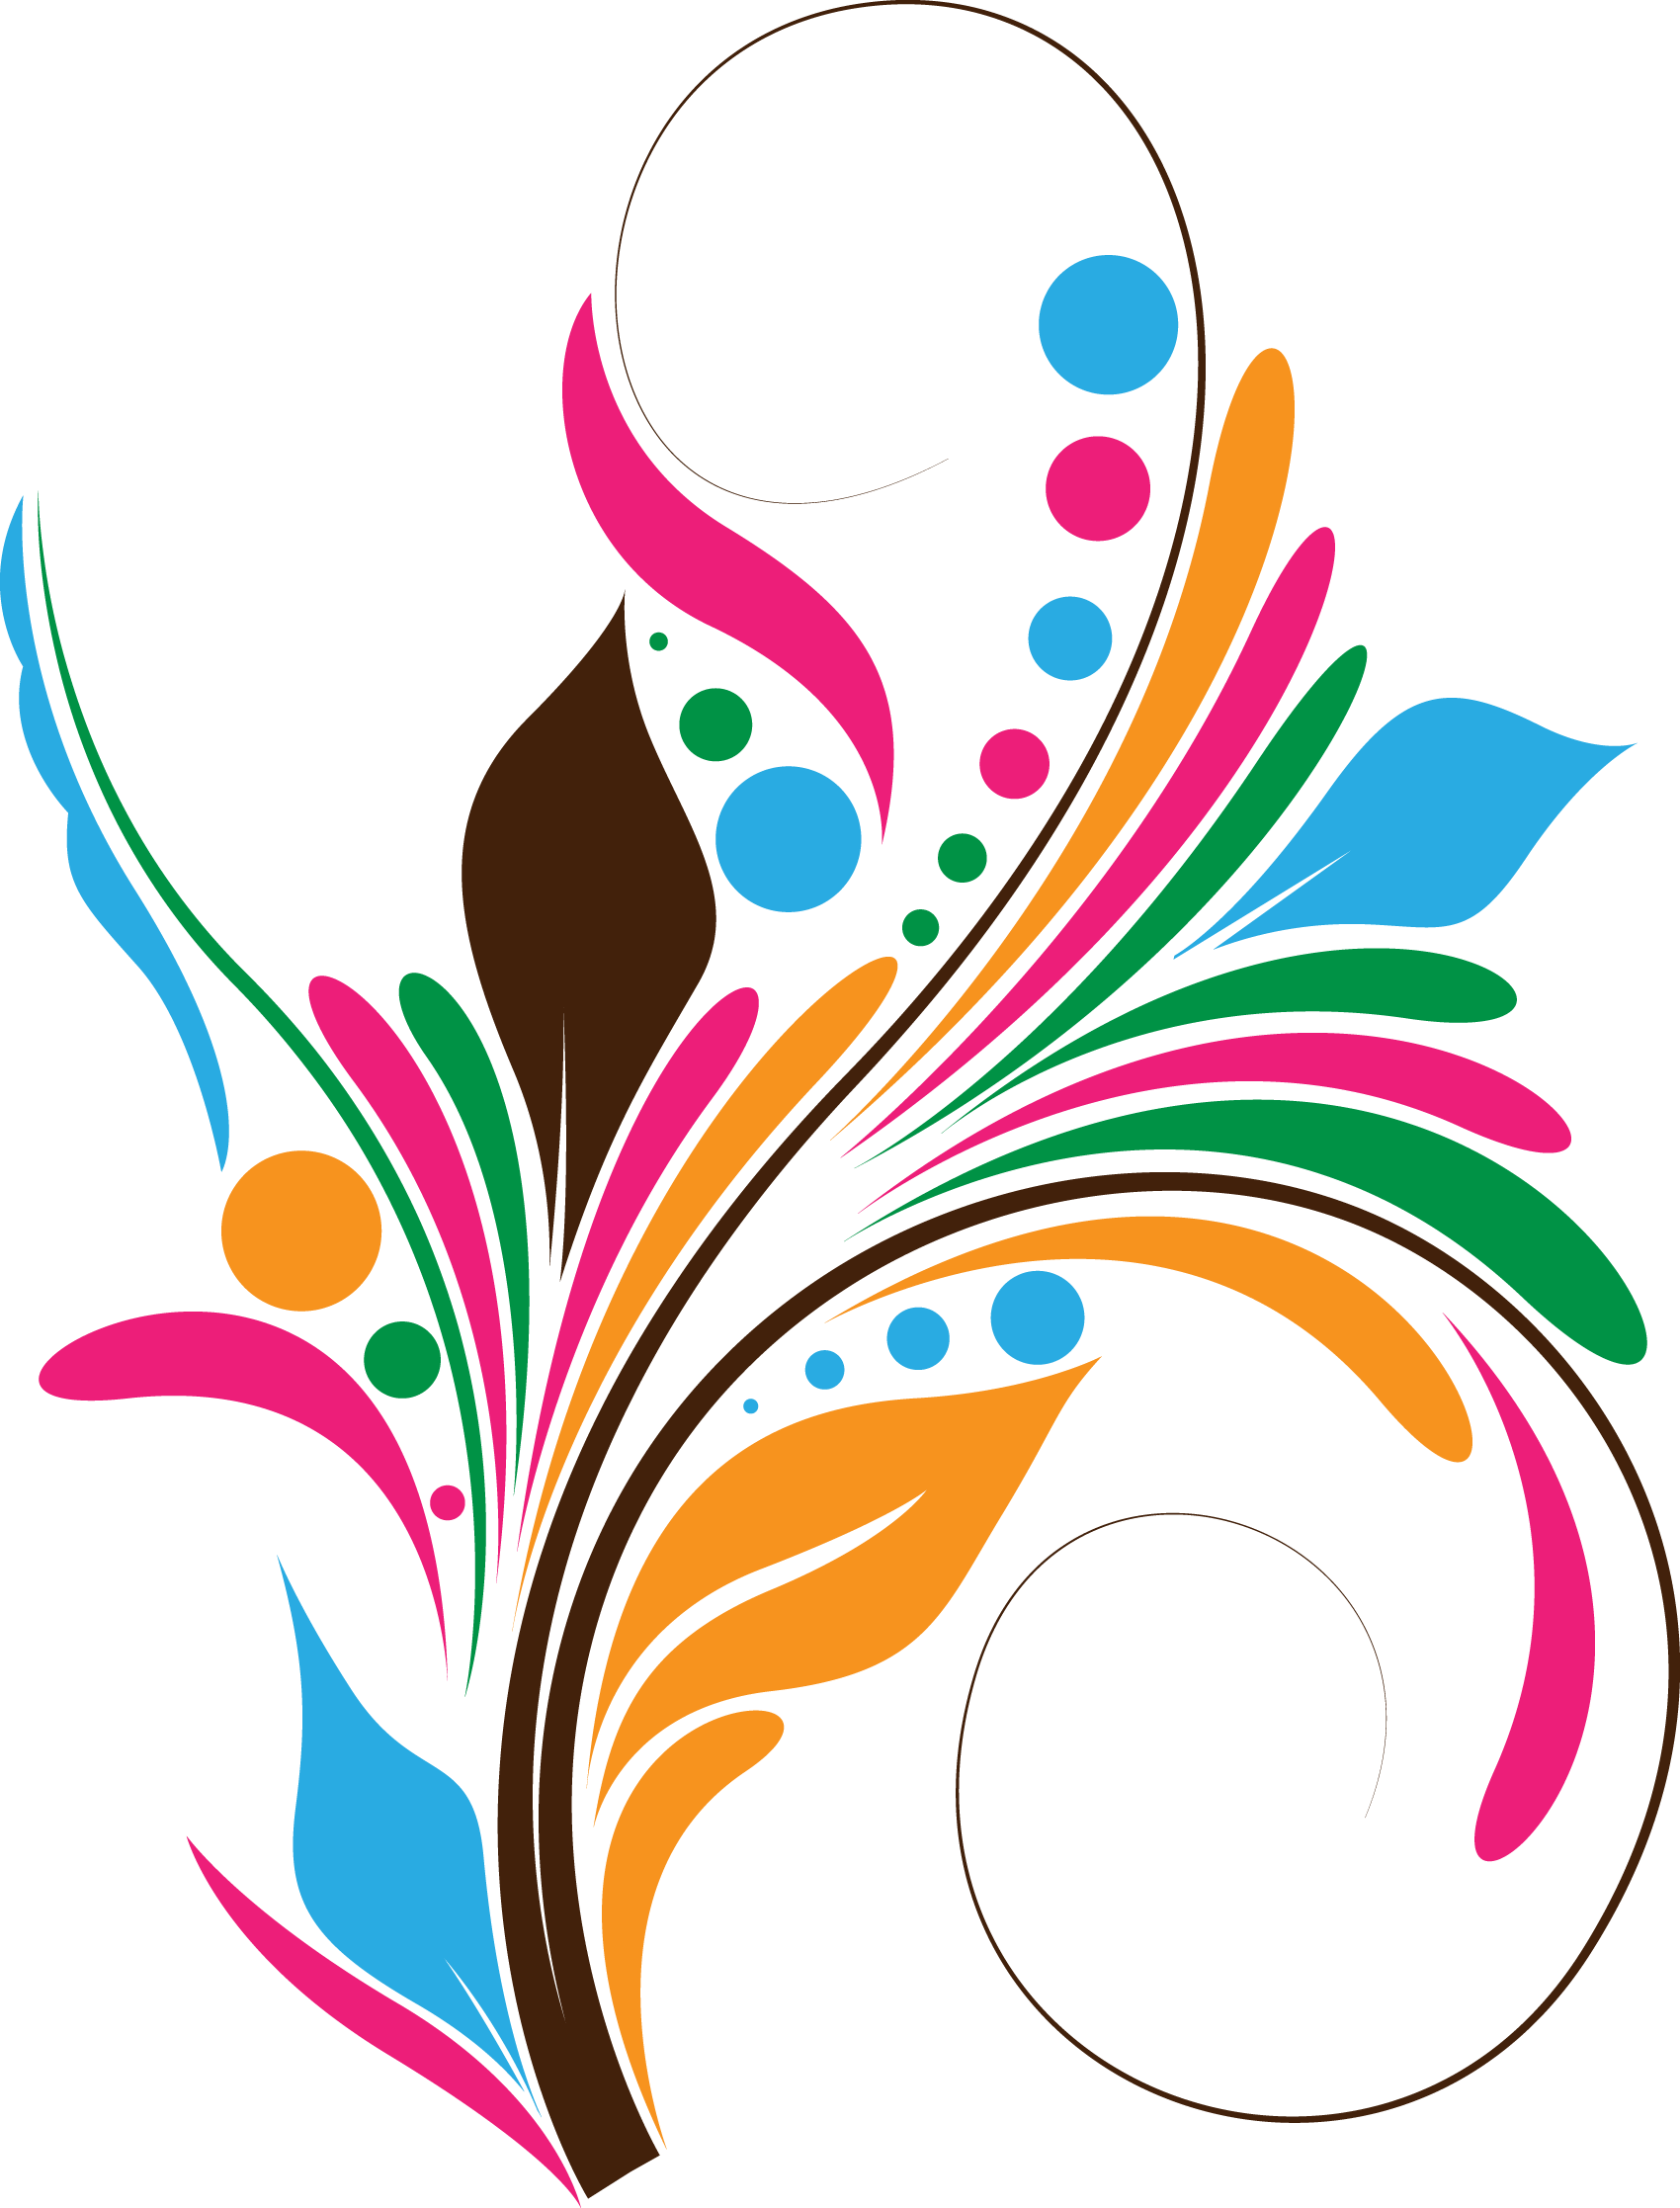 Love the shape and colors Raster to vector,